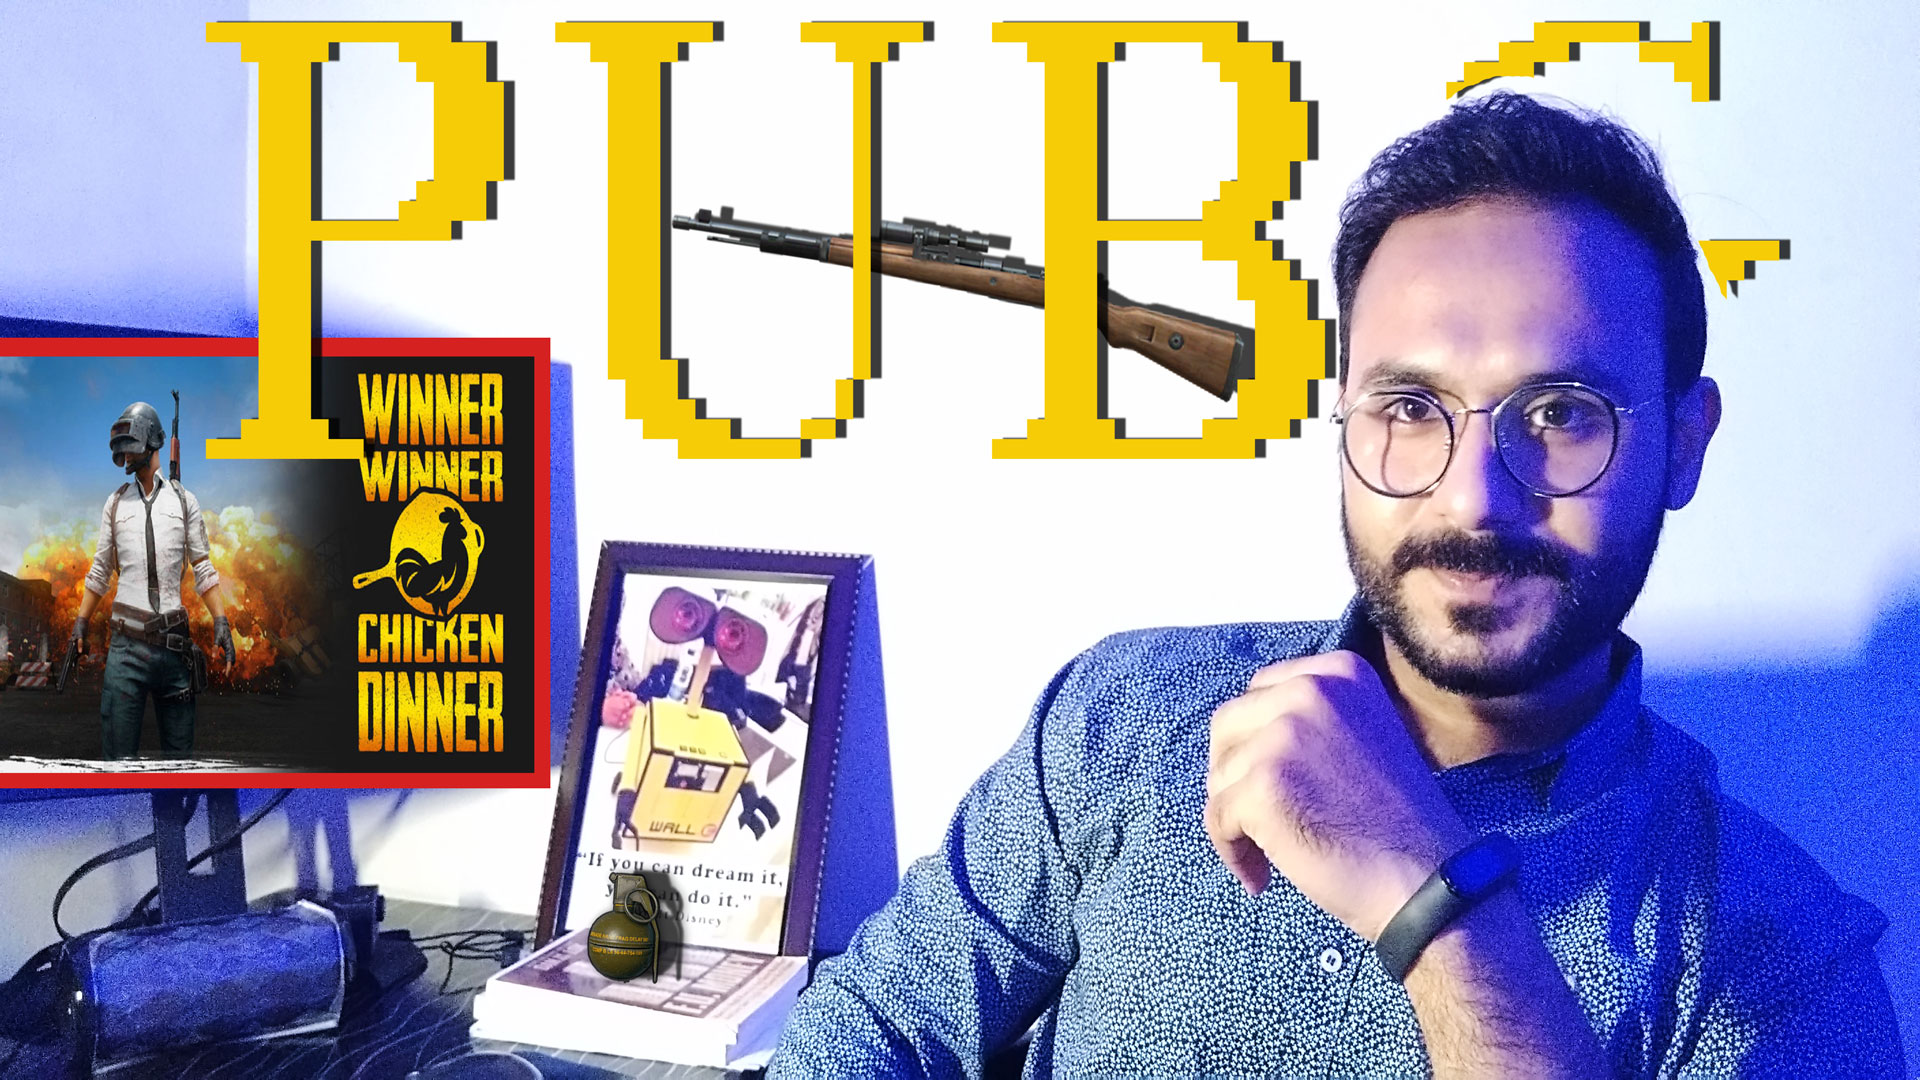 My-first-PUBG-mobile-experience-and-chickendinner-youtube